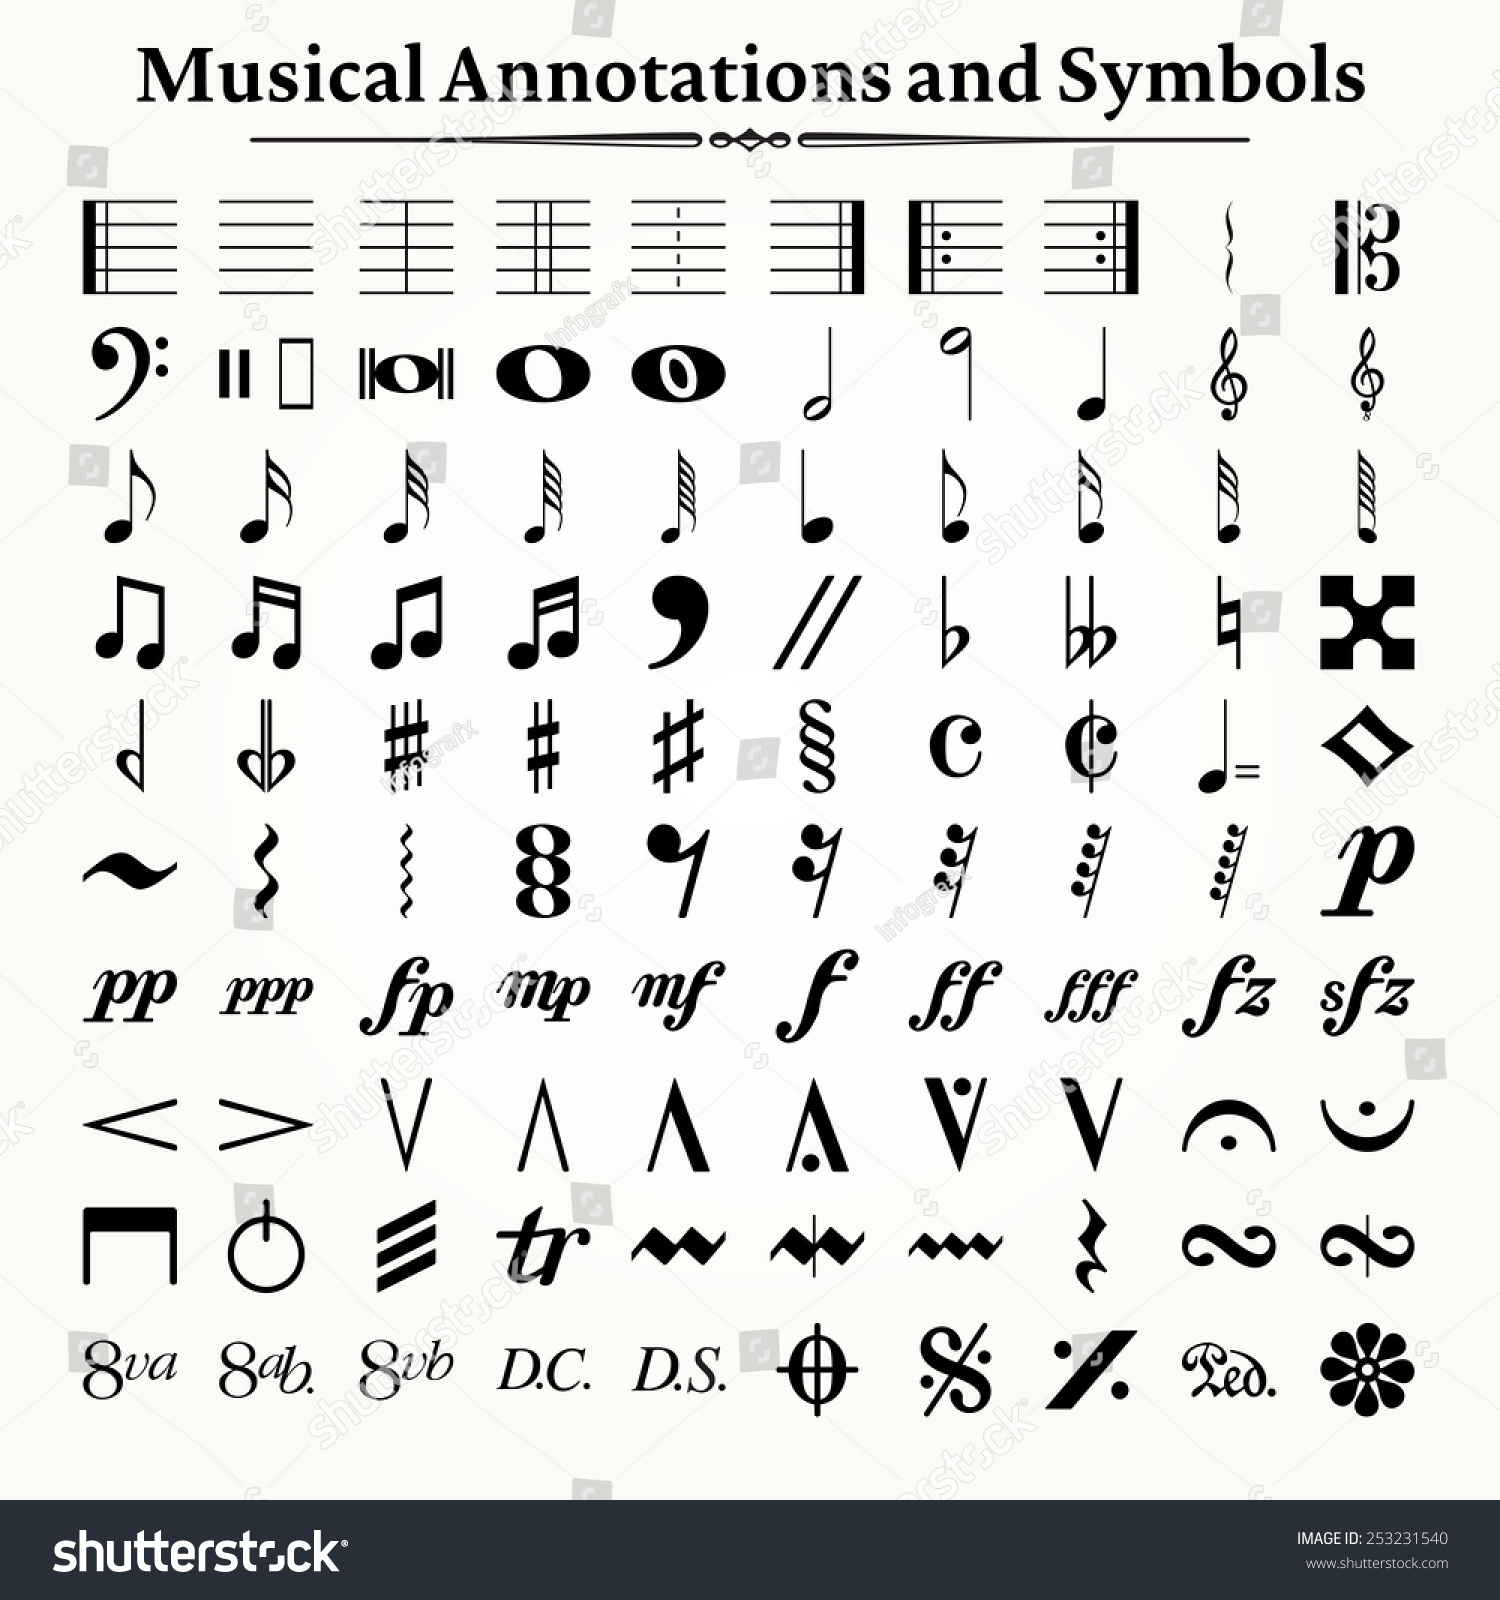 Elements Musical Symbols Icons Annotations Stock Vector Royalty